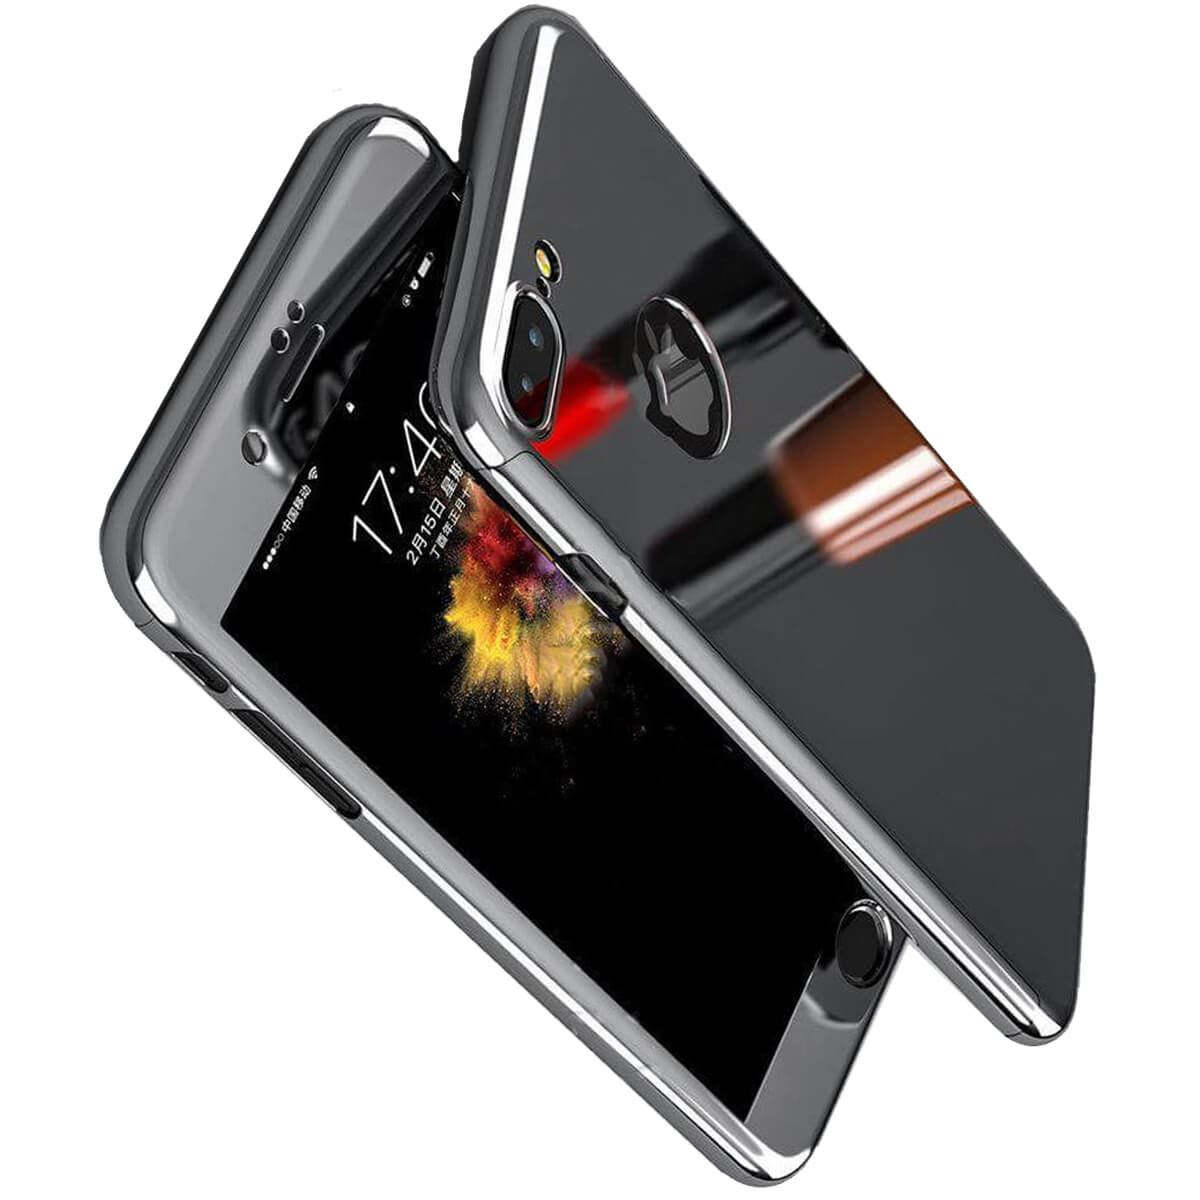 Tempered-Glass-Cover-For-iPhone-X-8-7-Plus-6s-5-Mirror-Hybrid-360-Hard-Thin-Case thumbnail 20